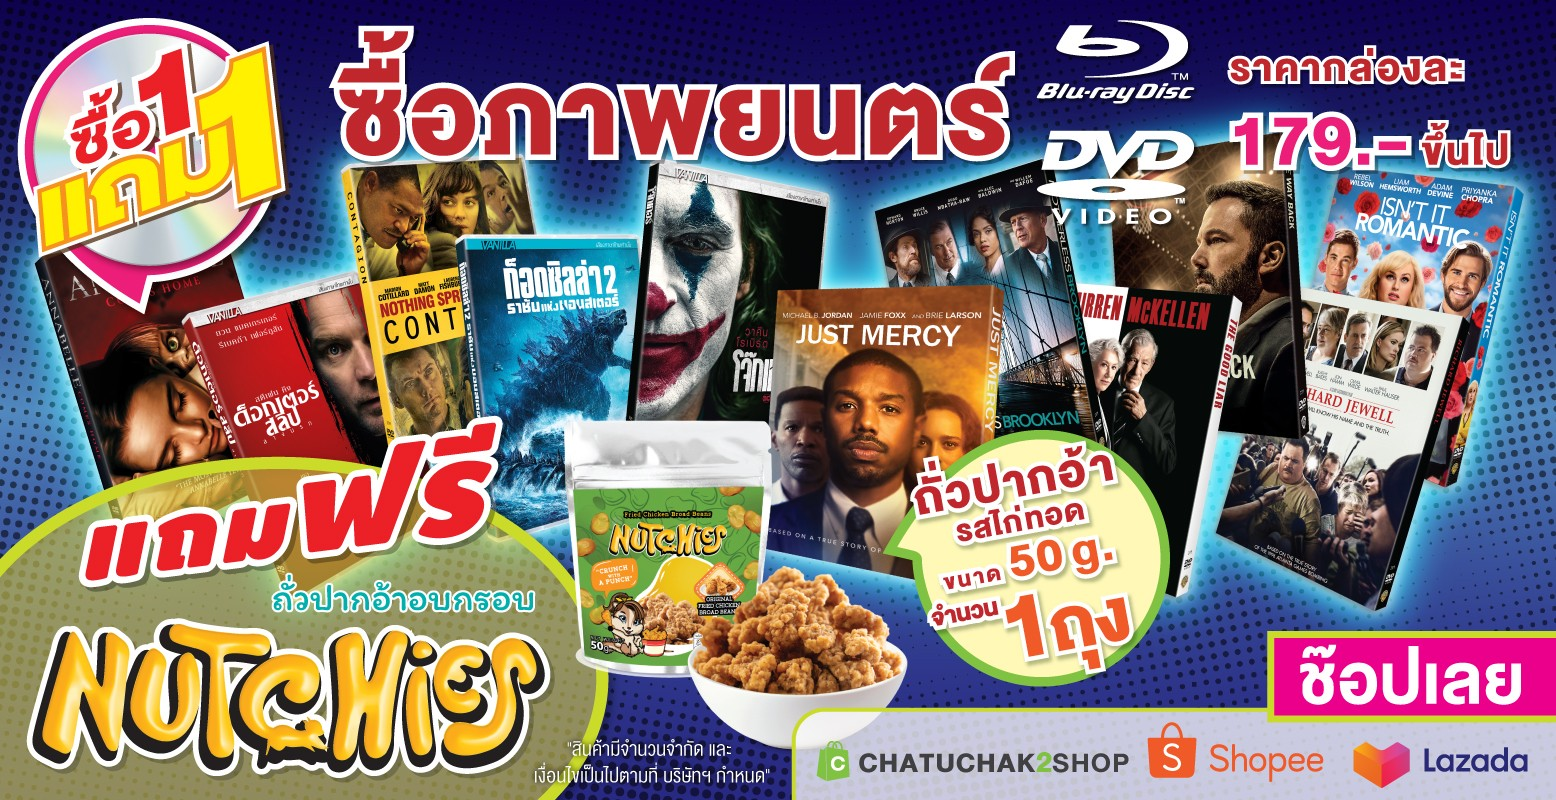 Buy 1 DVD over 179THB, get 1 Free Broad Beans Fried Chicken